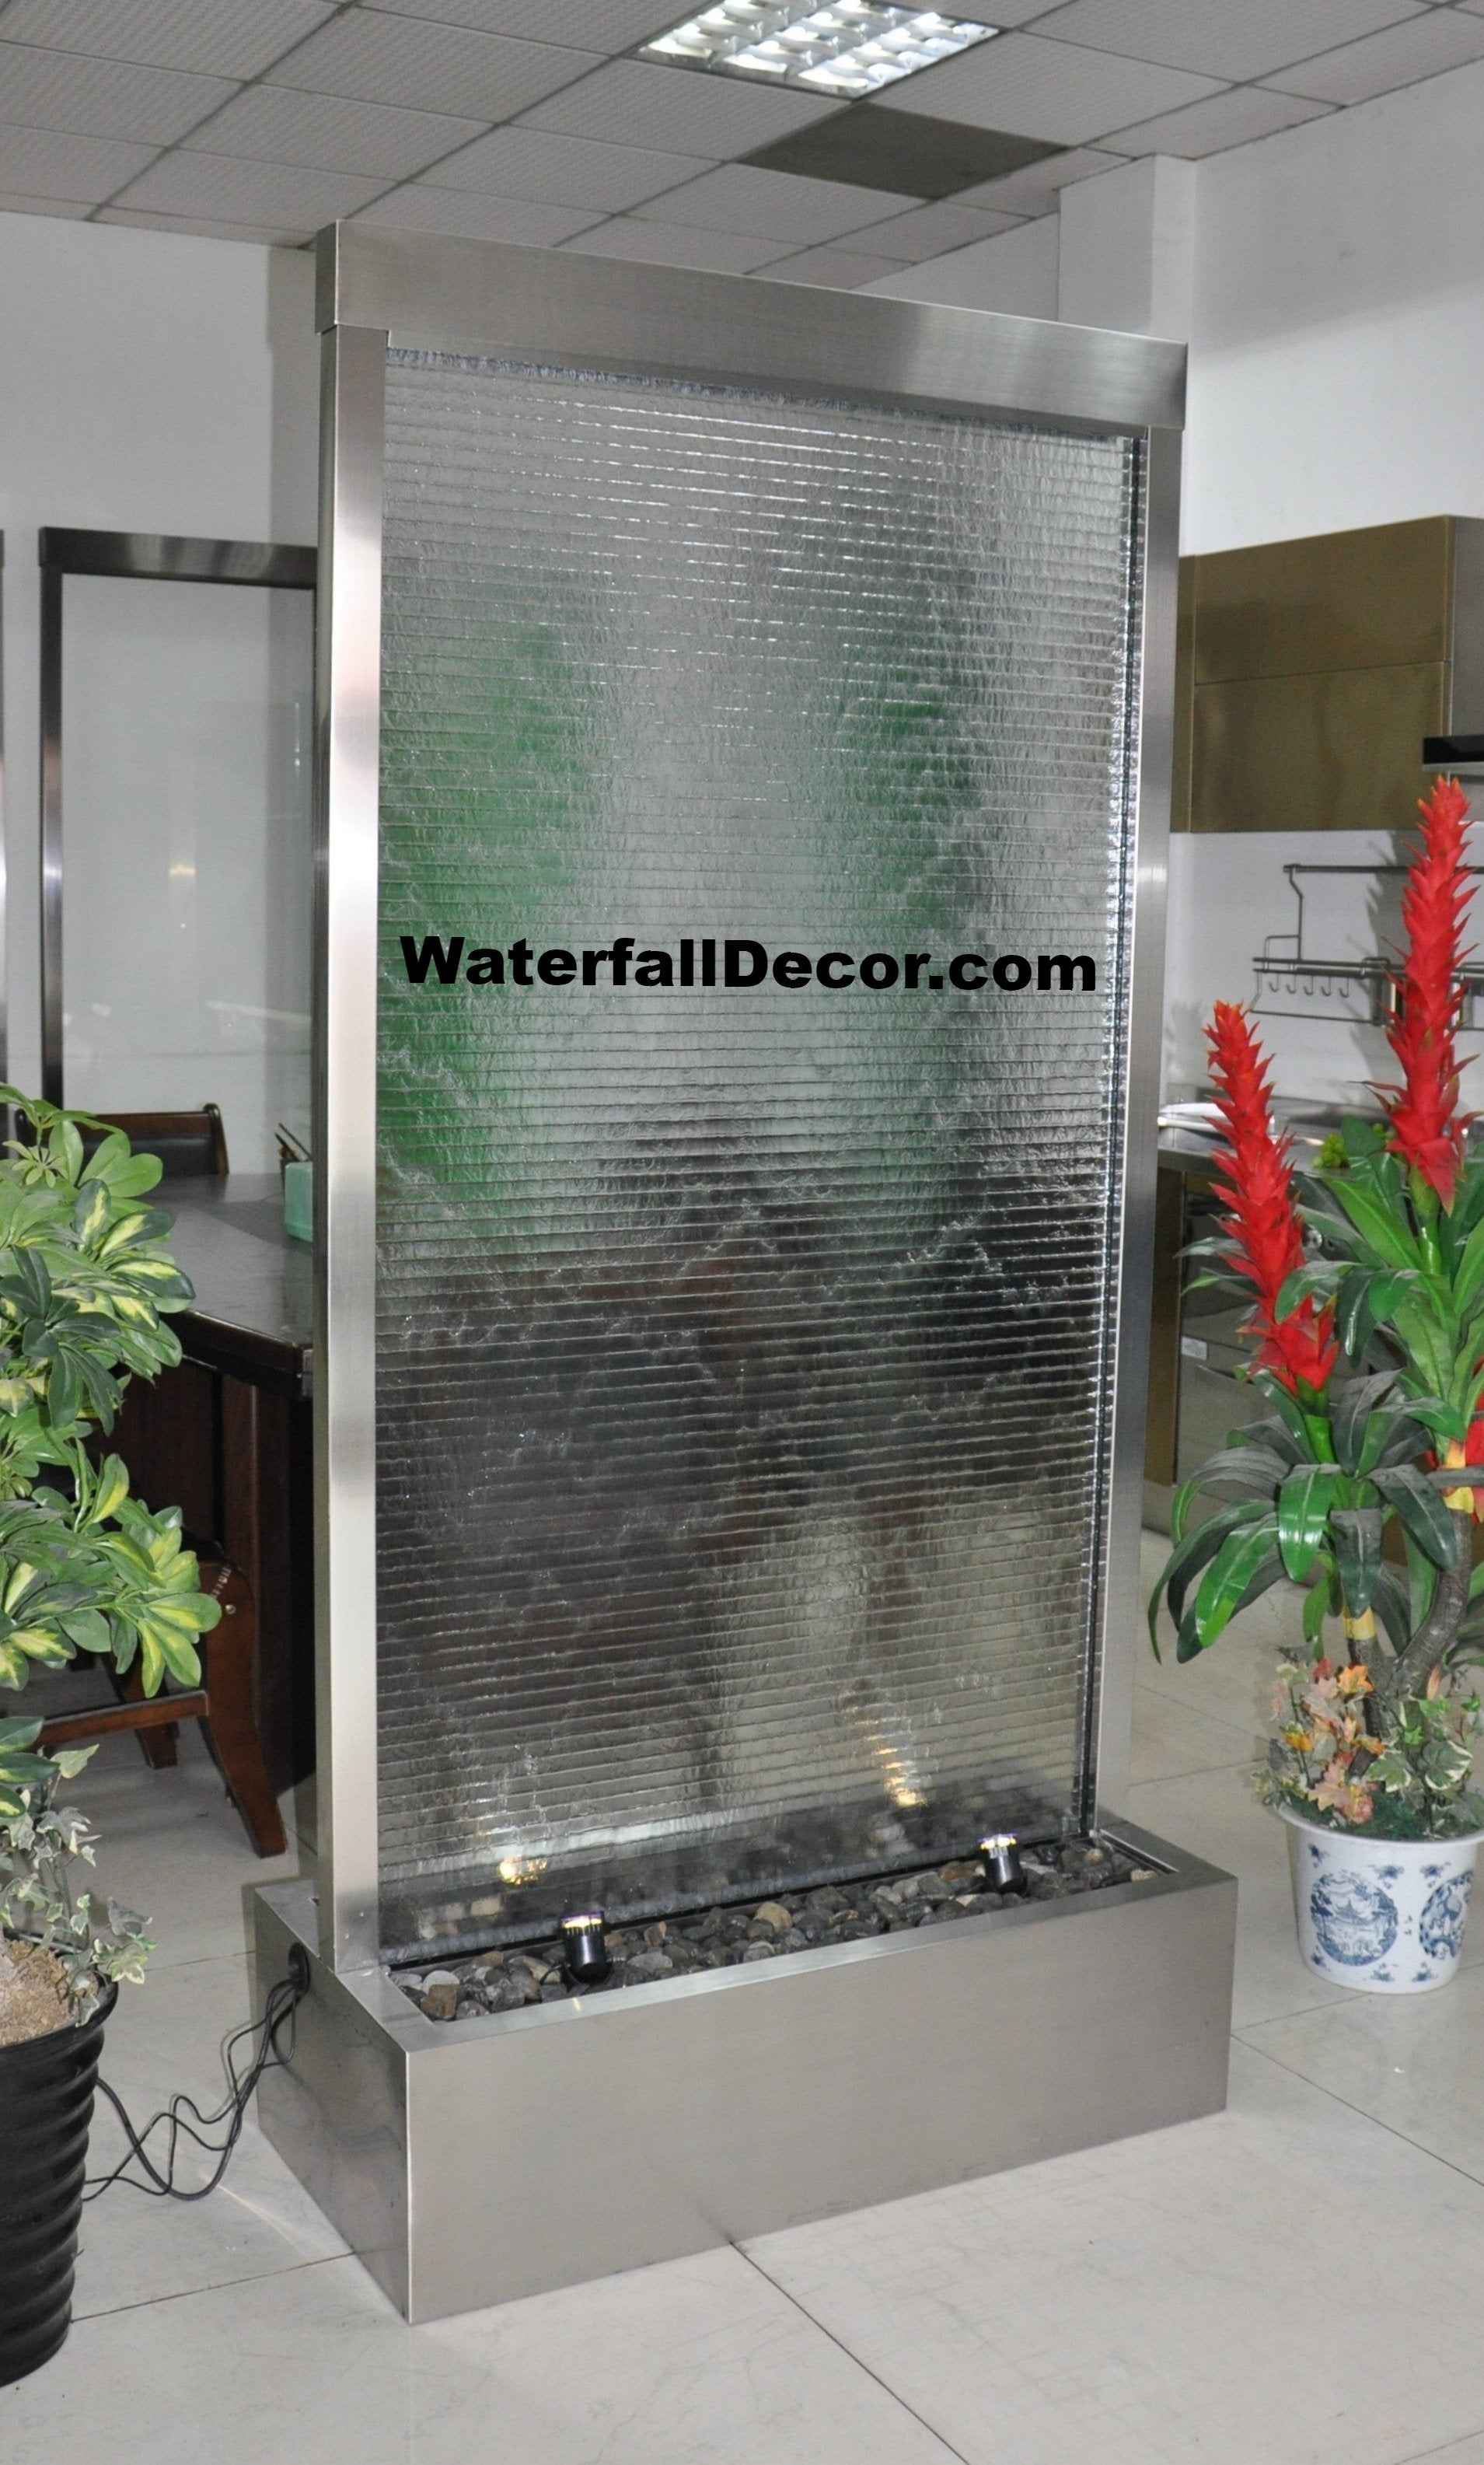 wall com waterfallnow fountain stairwell interior pin stone features water indoor